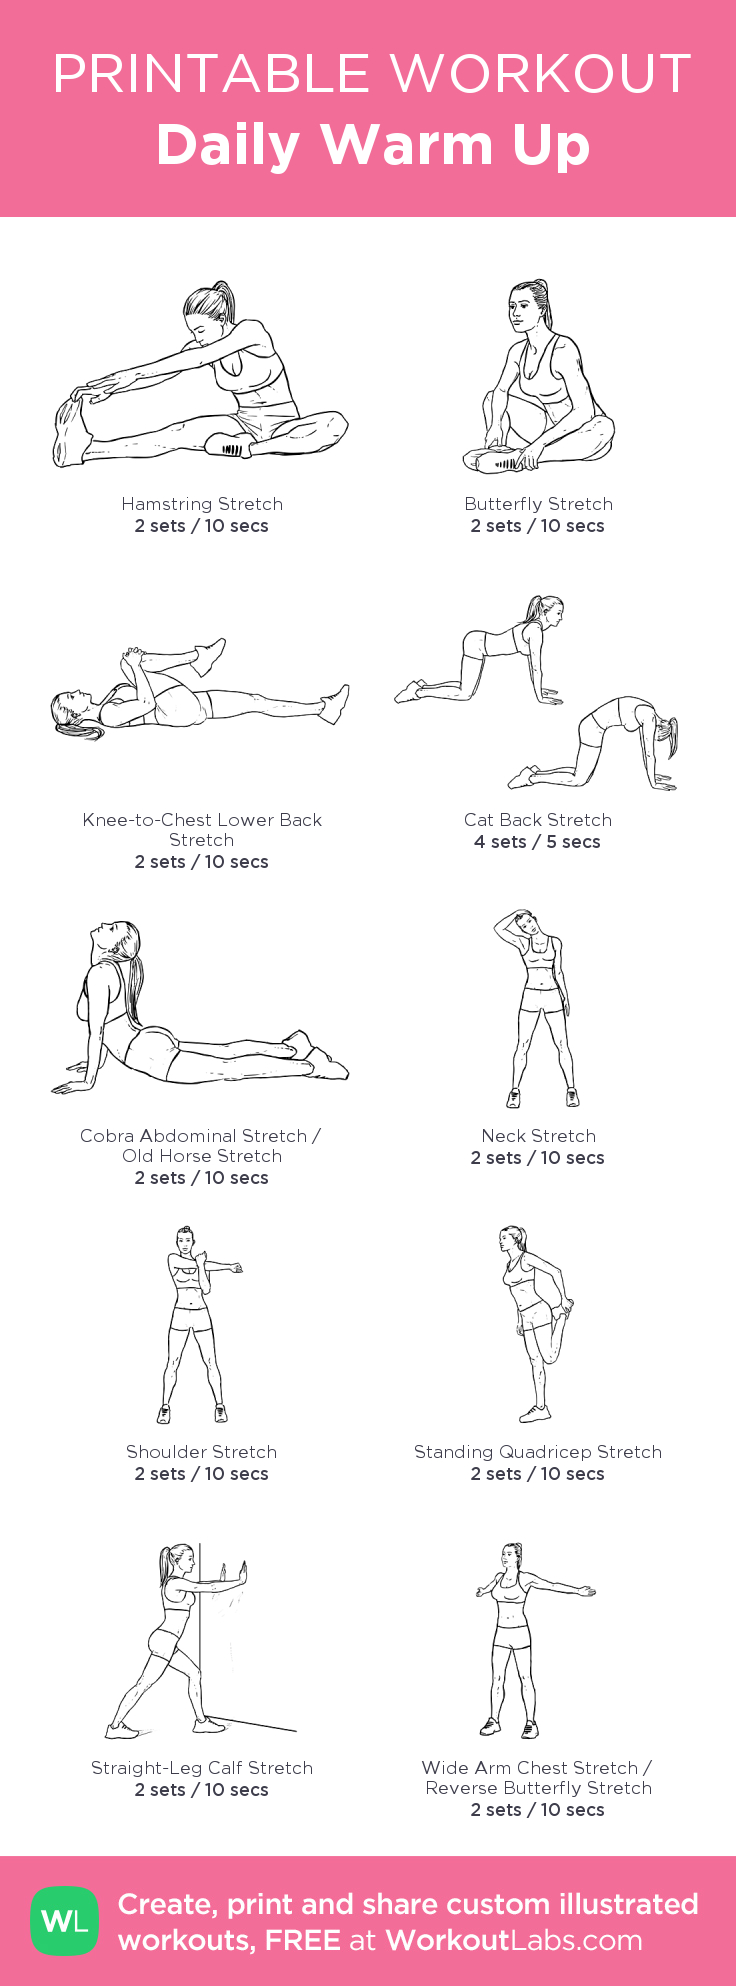 Daily Warm Up My Visual Workout Created At Workoutlabs Click Workout Labs Printable